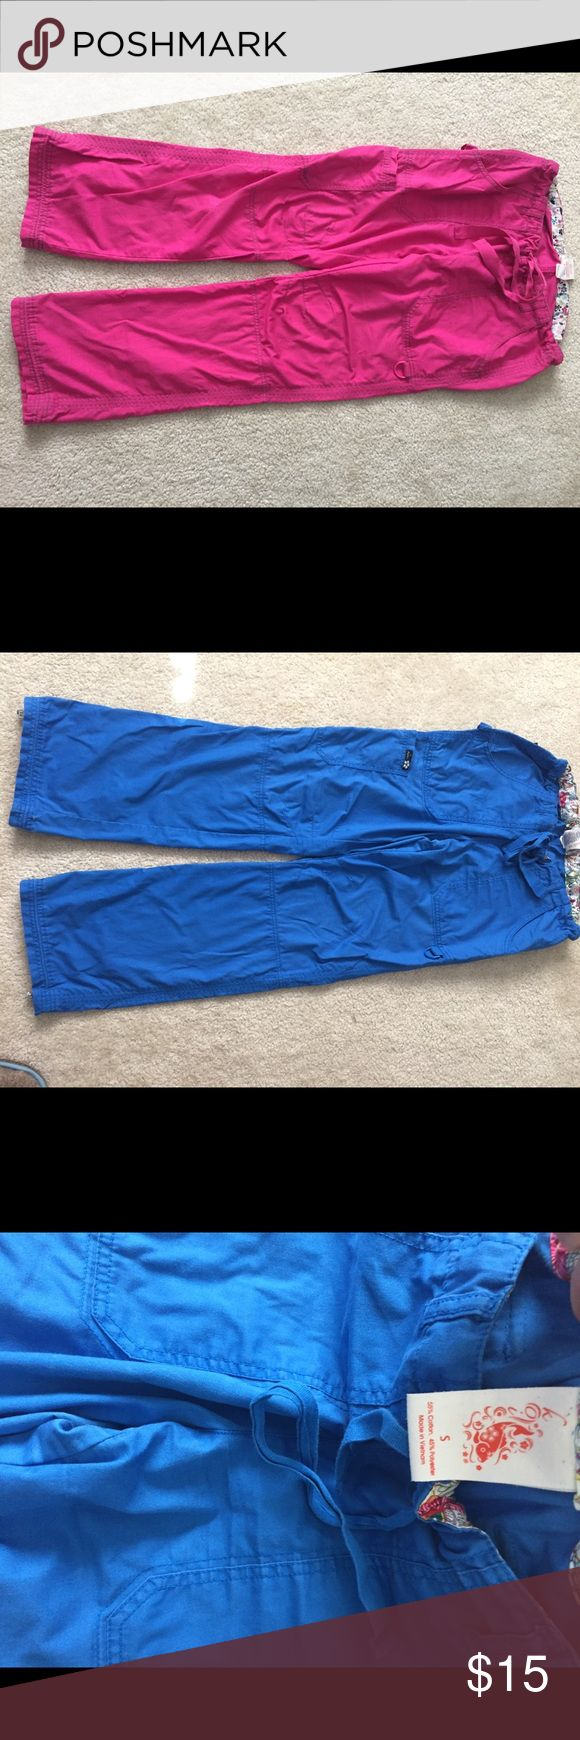 Koi scrub pants size S in bright pink/ raspberry Worn couple times. On pink a little bit of inc on the side of pocket. . Otherwise  in great condition! Multiple features- several pockets, D ring for stethoscope holder. Number 1 seller pants on uniform market👌Would of never put them for sale but unfortunately not allowed to use those colors any longer 😫Love love love these💕💕💕💕💕💕 koi Pants